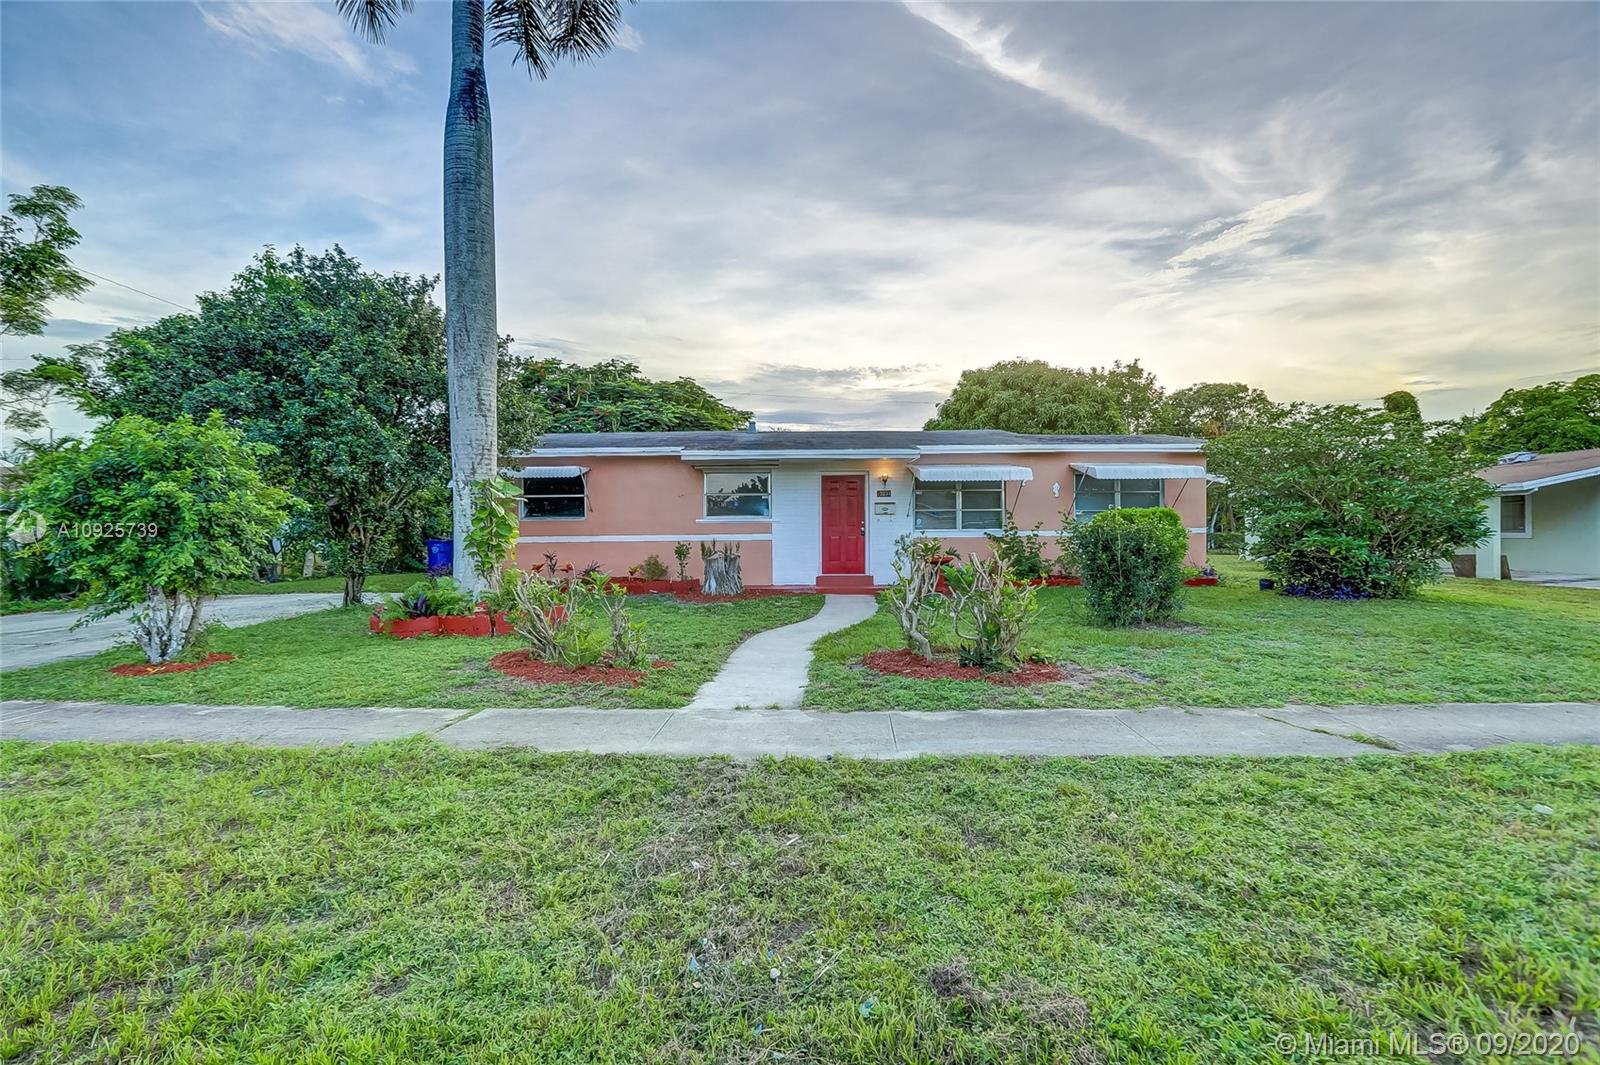 A great opportunity to own a 3 bedroom single family home in Lauderdale Lakes. The property features an incredible bonus room that can easily be converted into a 4 bedroom. Kitchen and baths have been recently remodeled. Backyard is spacious with plenty of room for a pool! A few cosmetic touches to make this home your dream home!